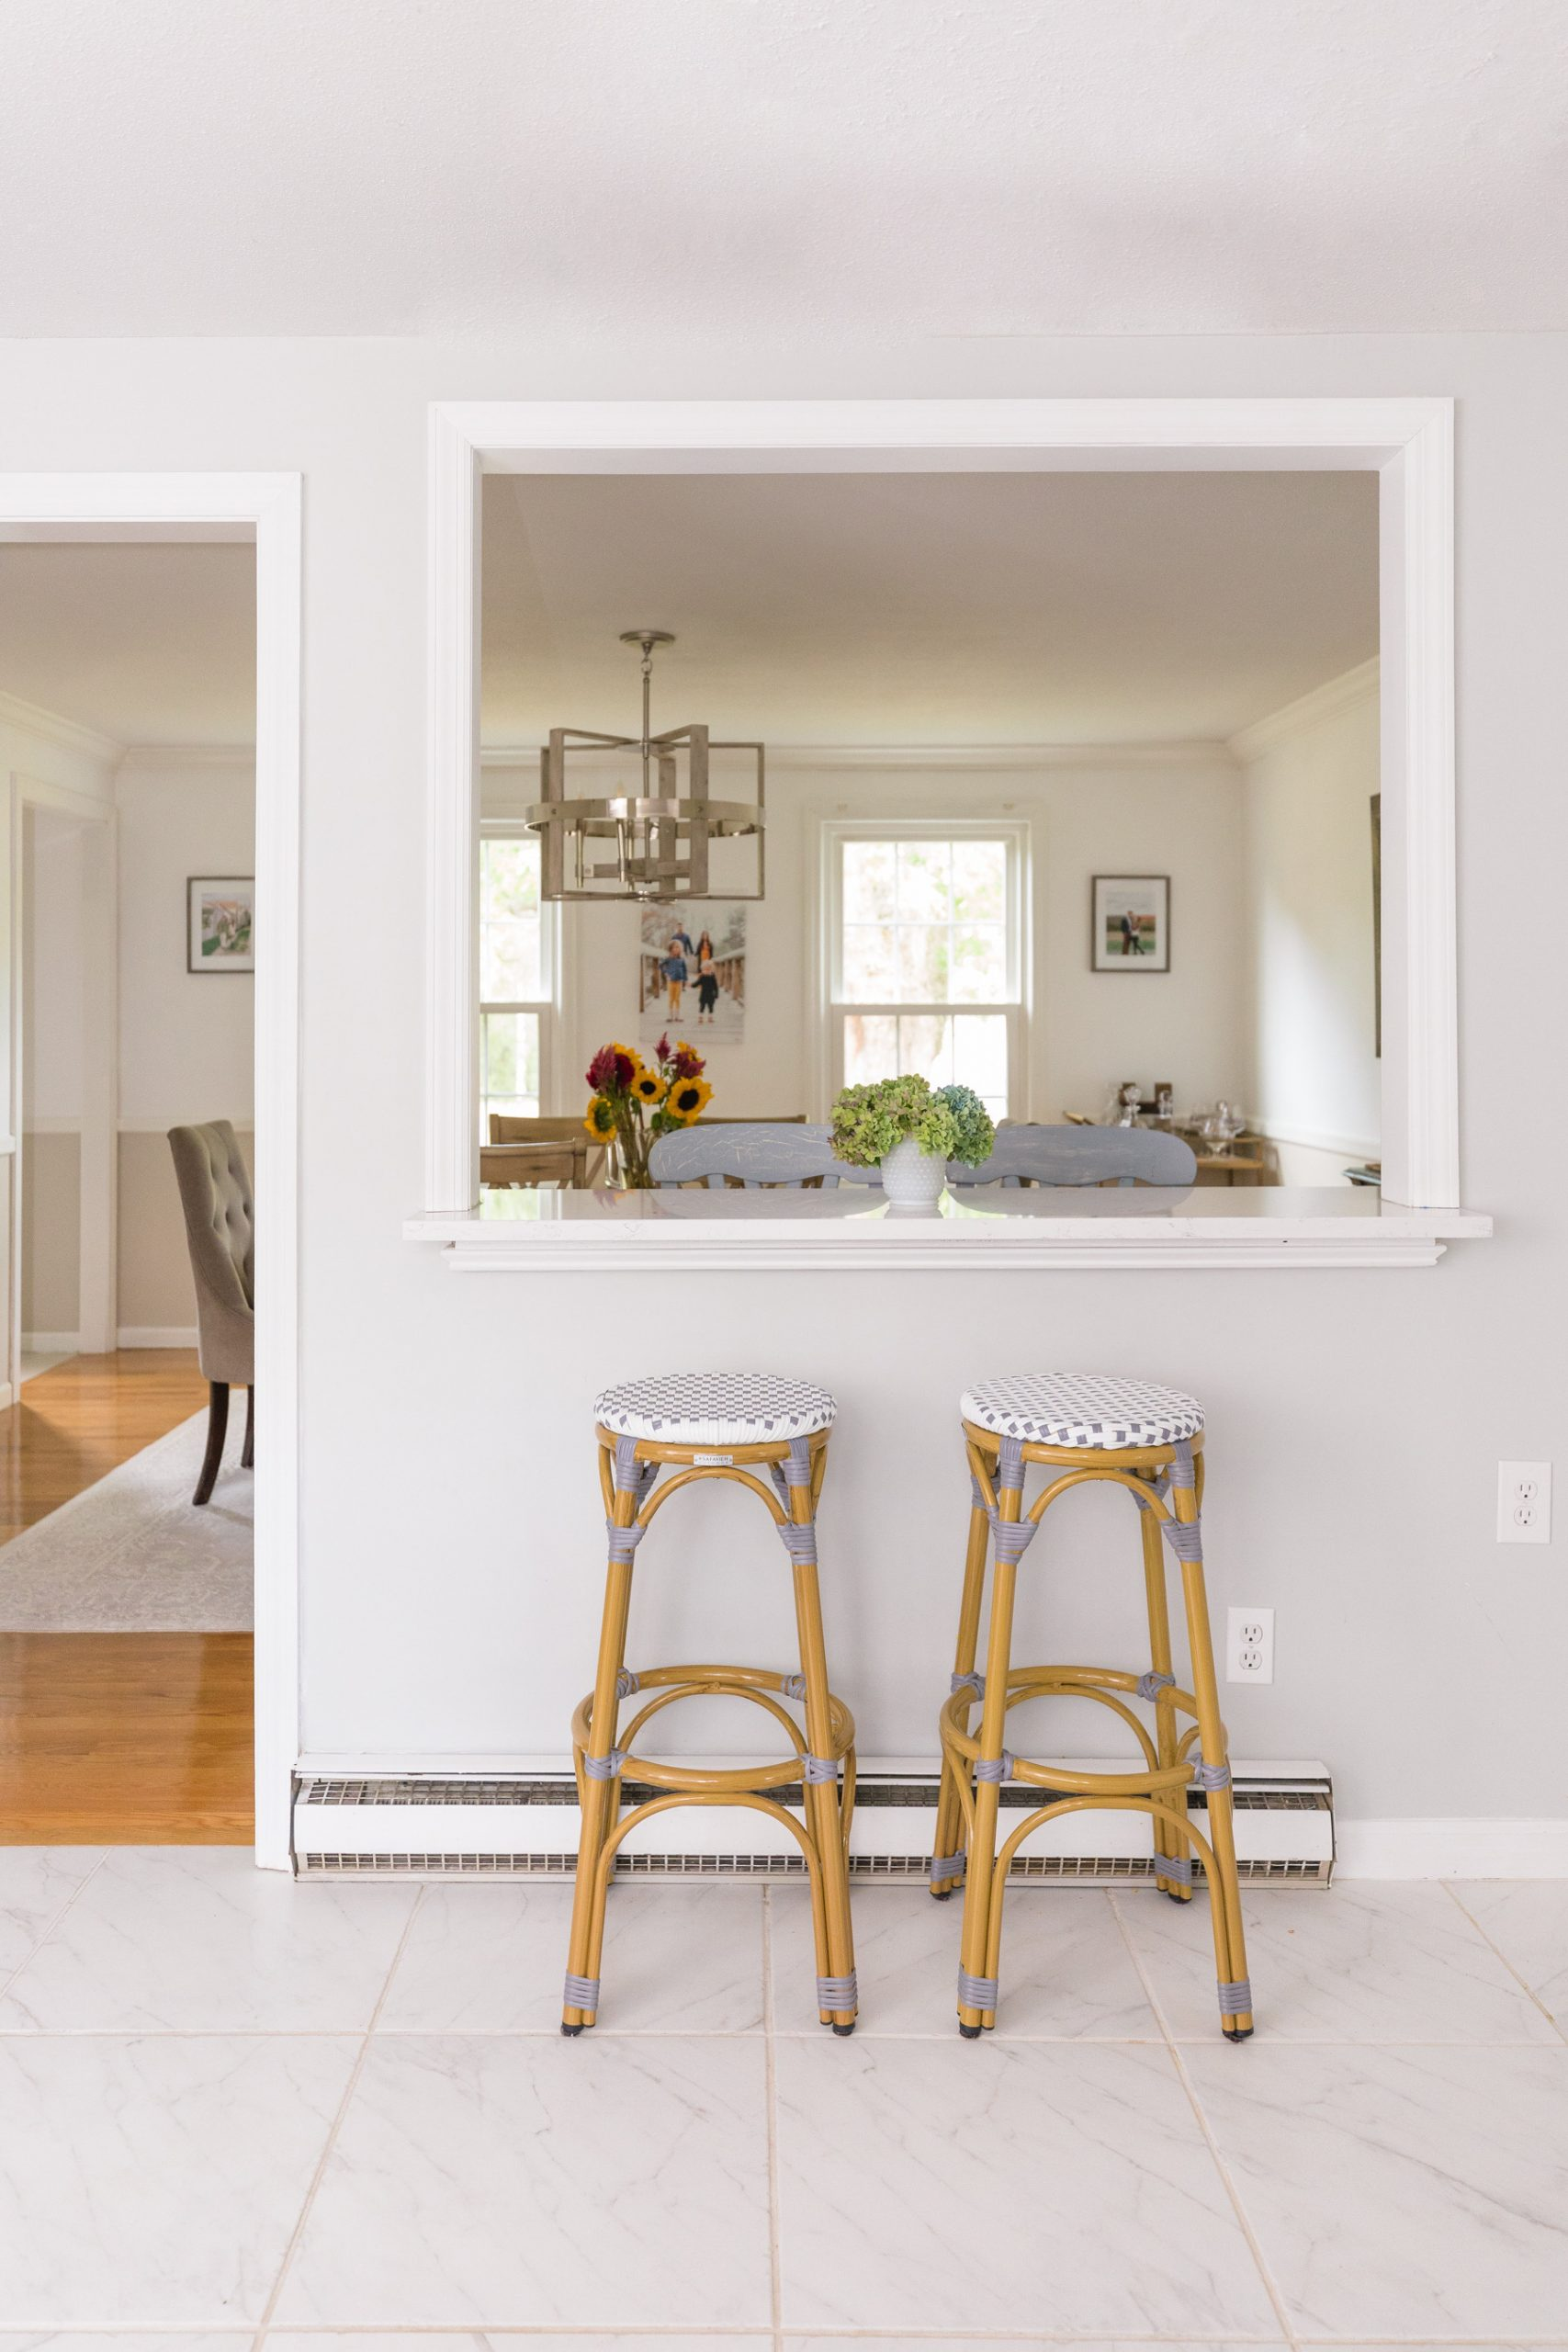 pass through window with breakfast bar in kitchen